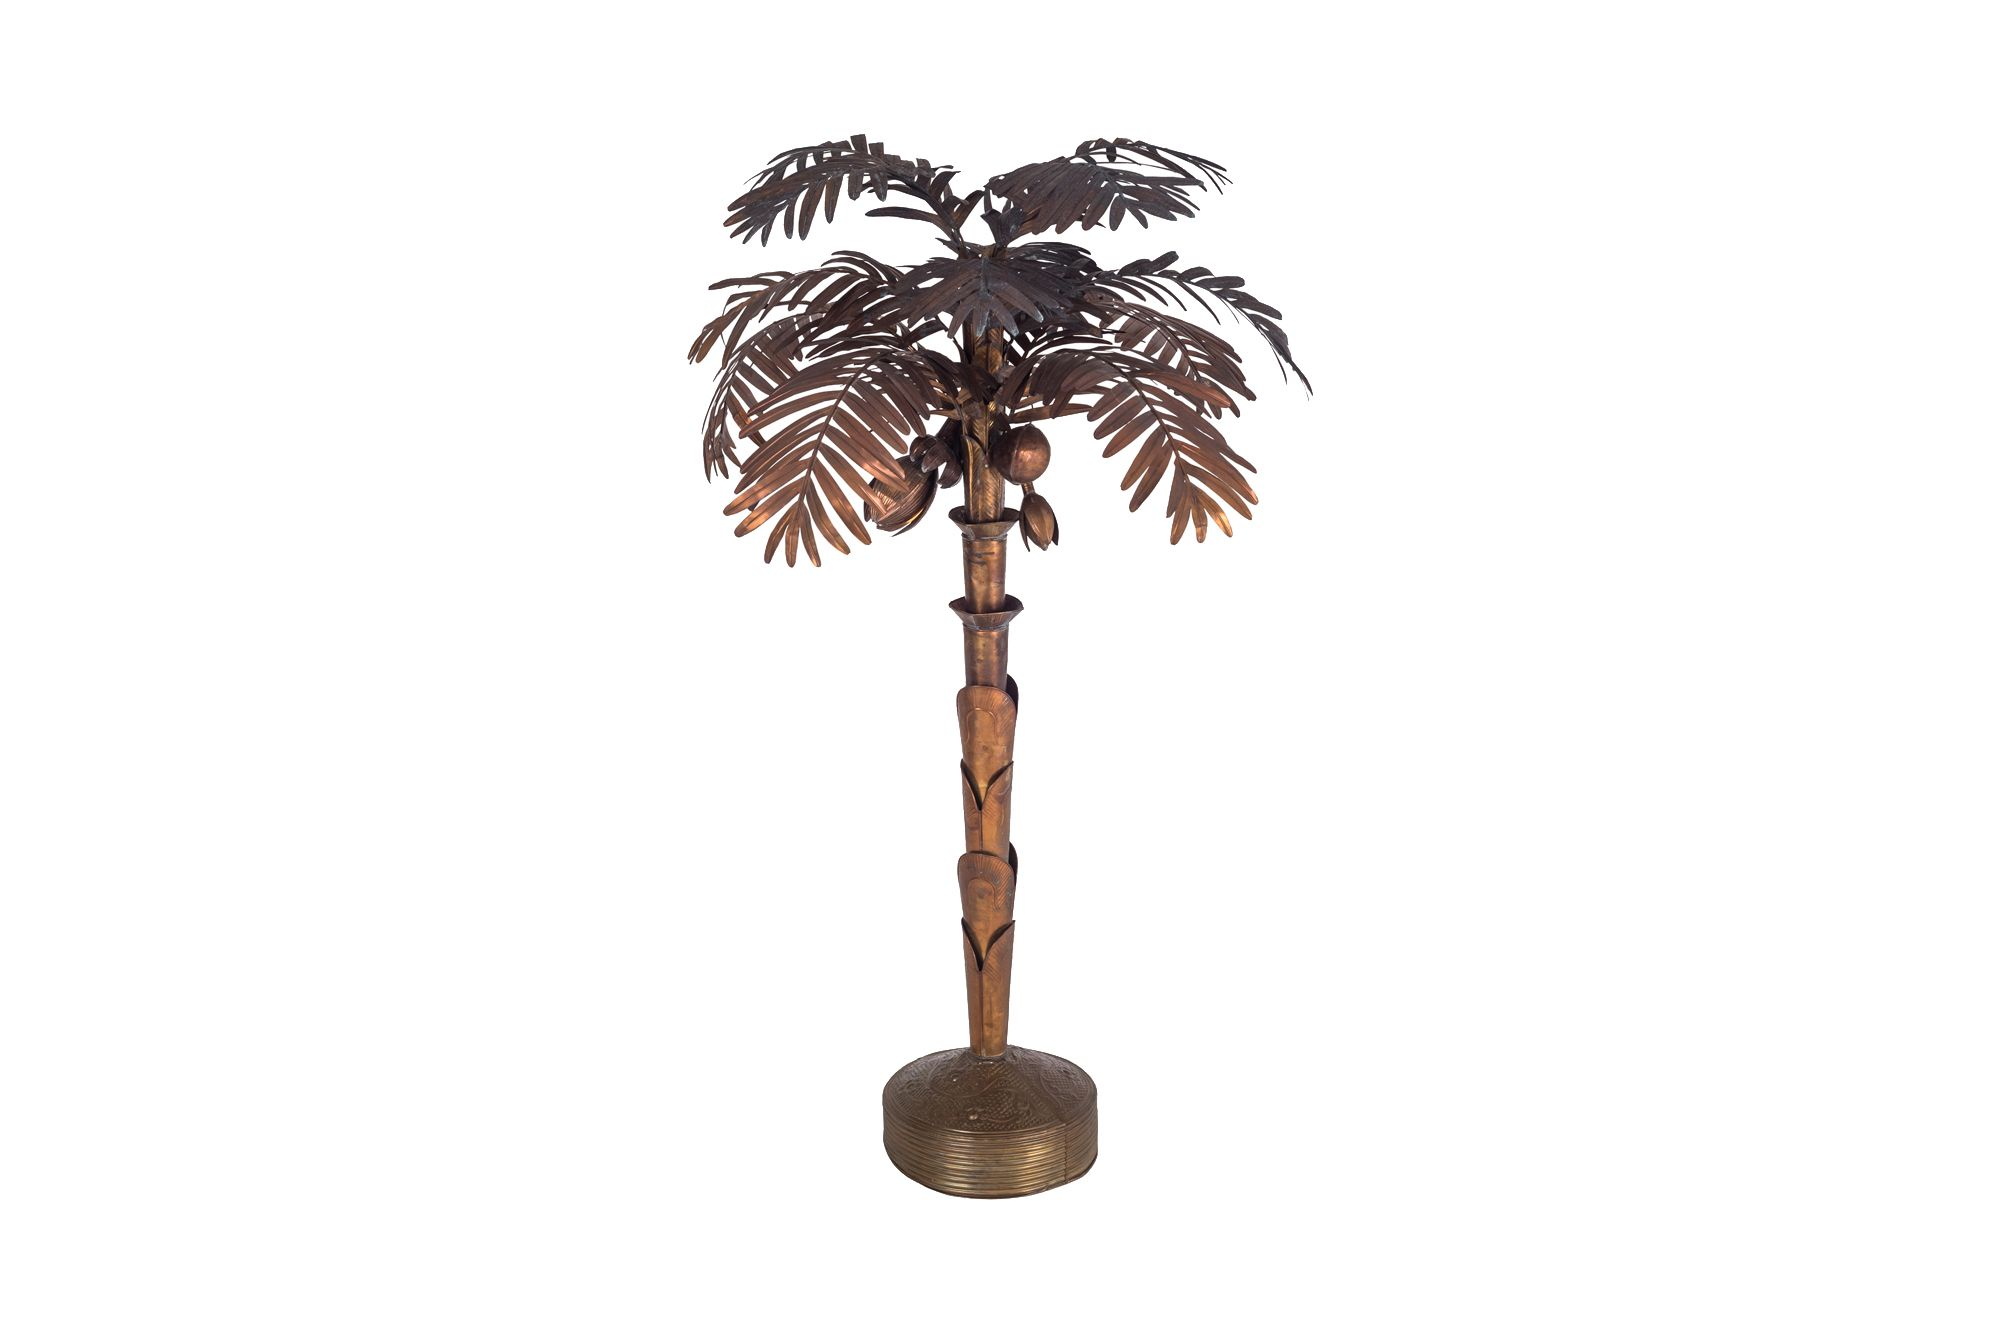 Vintage Palm Tree Floor Lamp In Copper Previous Next